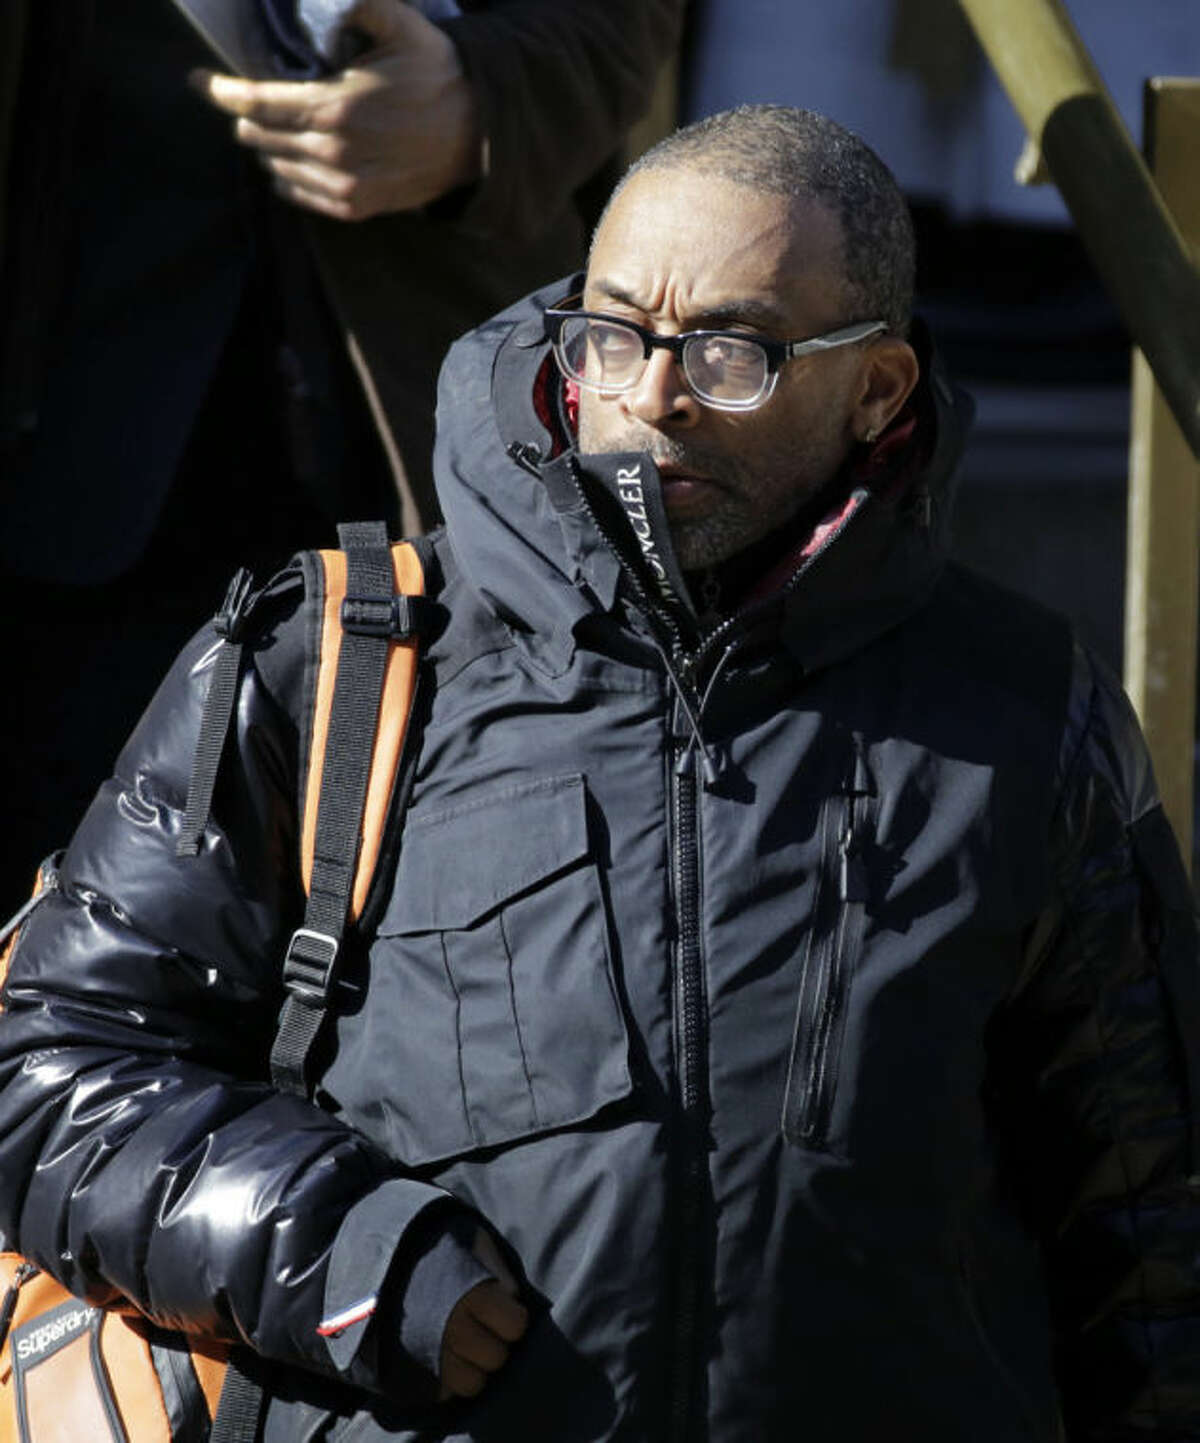 Movie director Spike Lee leaves the Church of St. Ignatius Loyola following the funeral for actor Philip Seymour Hoffman, Friday, Feb. 7, 2014 in New York. Hoffman, 46, was found dead Sunday of an apparent heroin overdose. (AP Photo/Mark Lennihan)